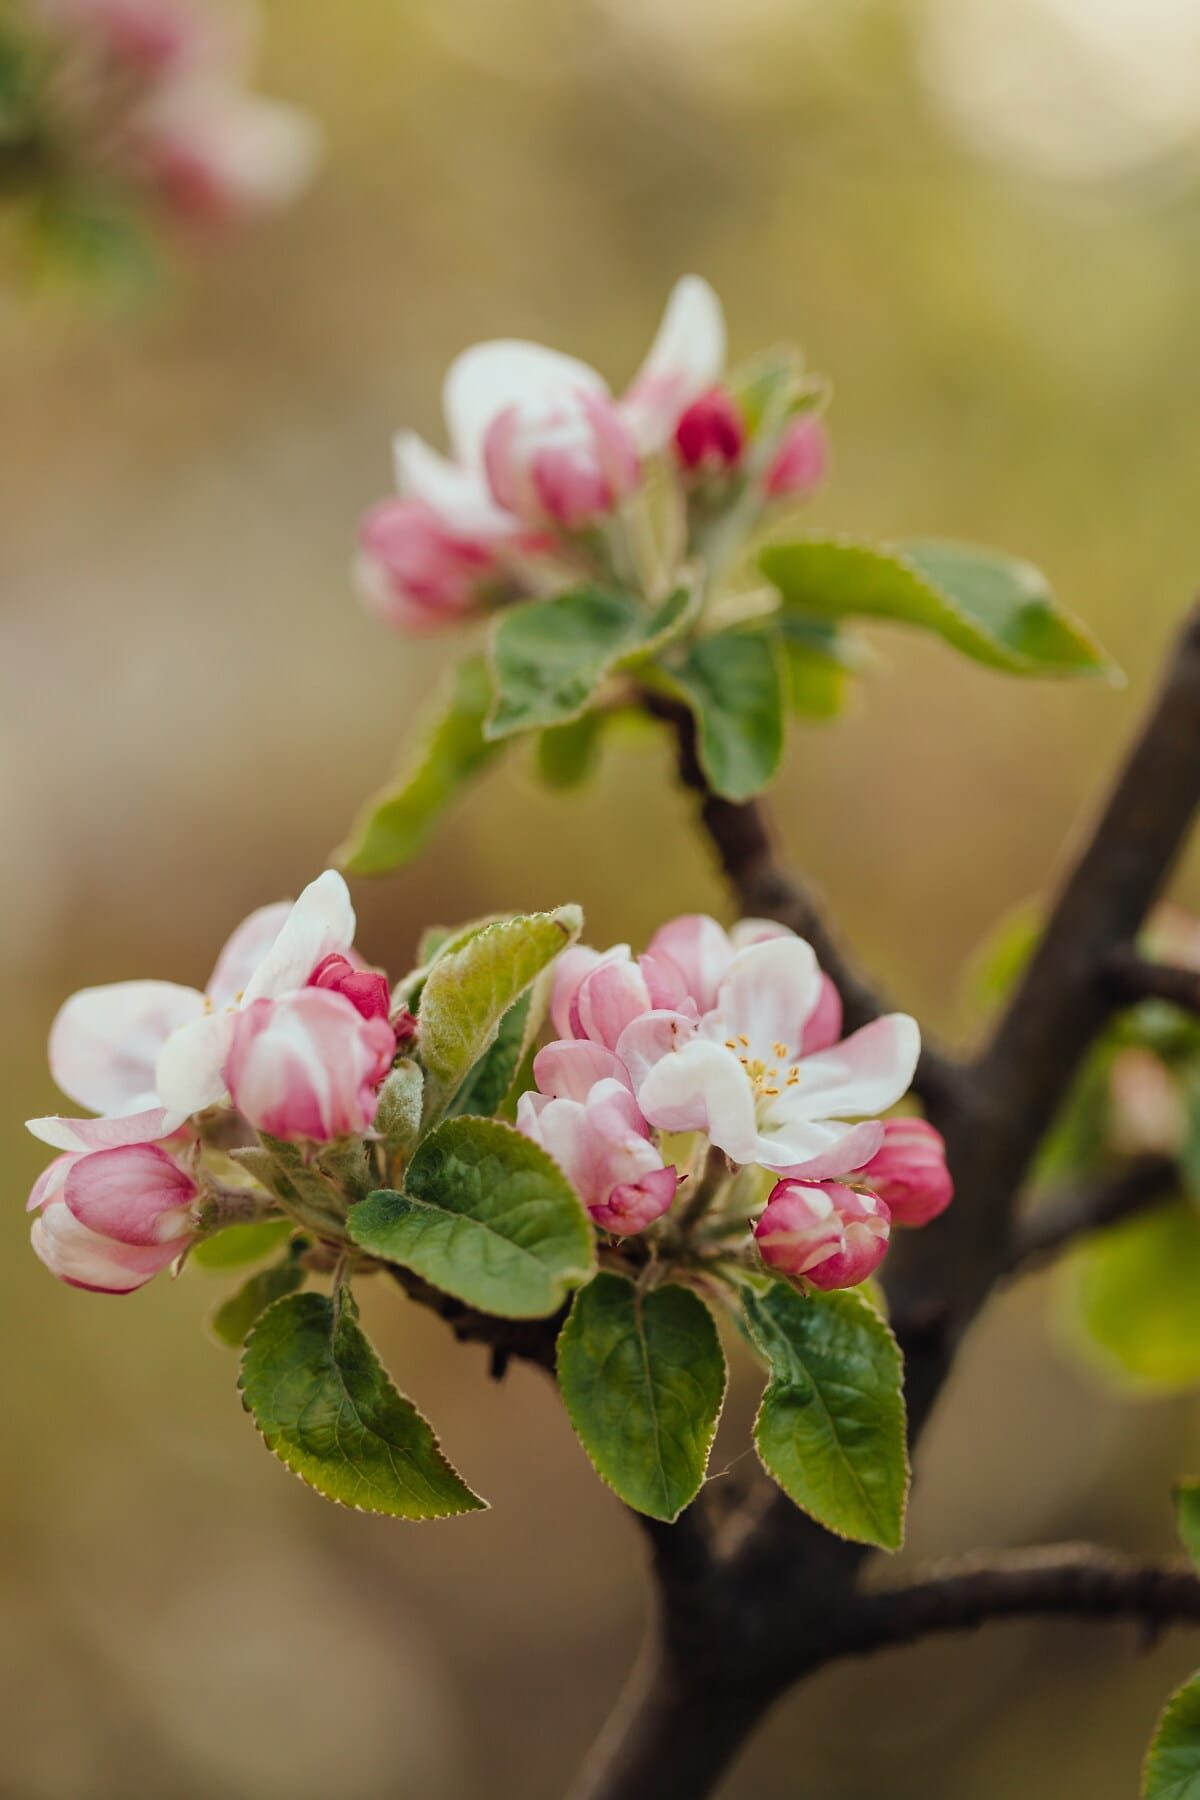 fruit tree, apple tree, white flower, petals, pinkish, branches, details, branch, spring, plant